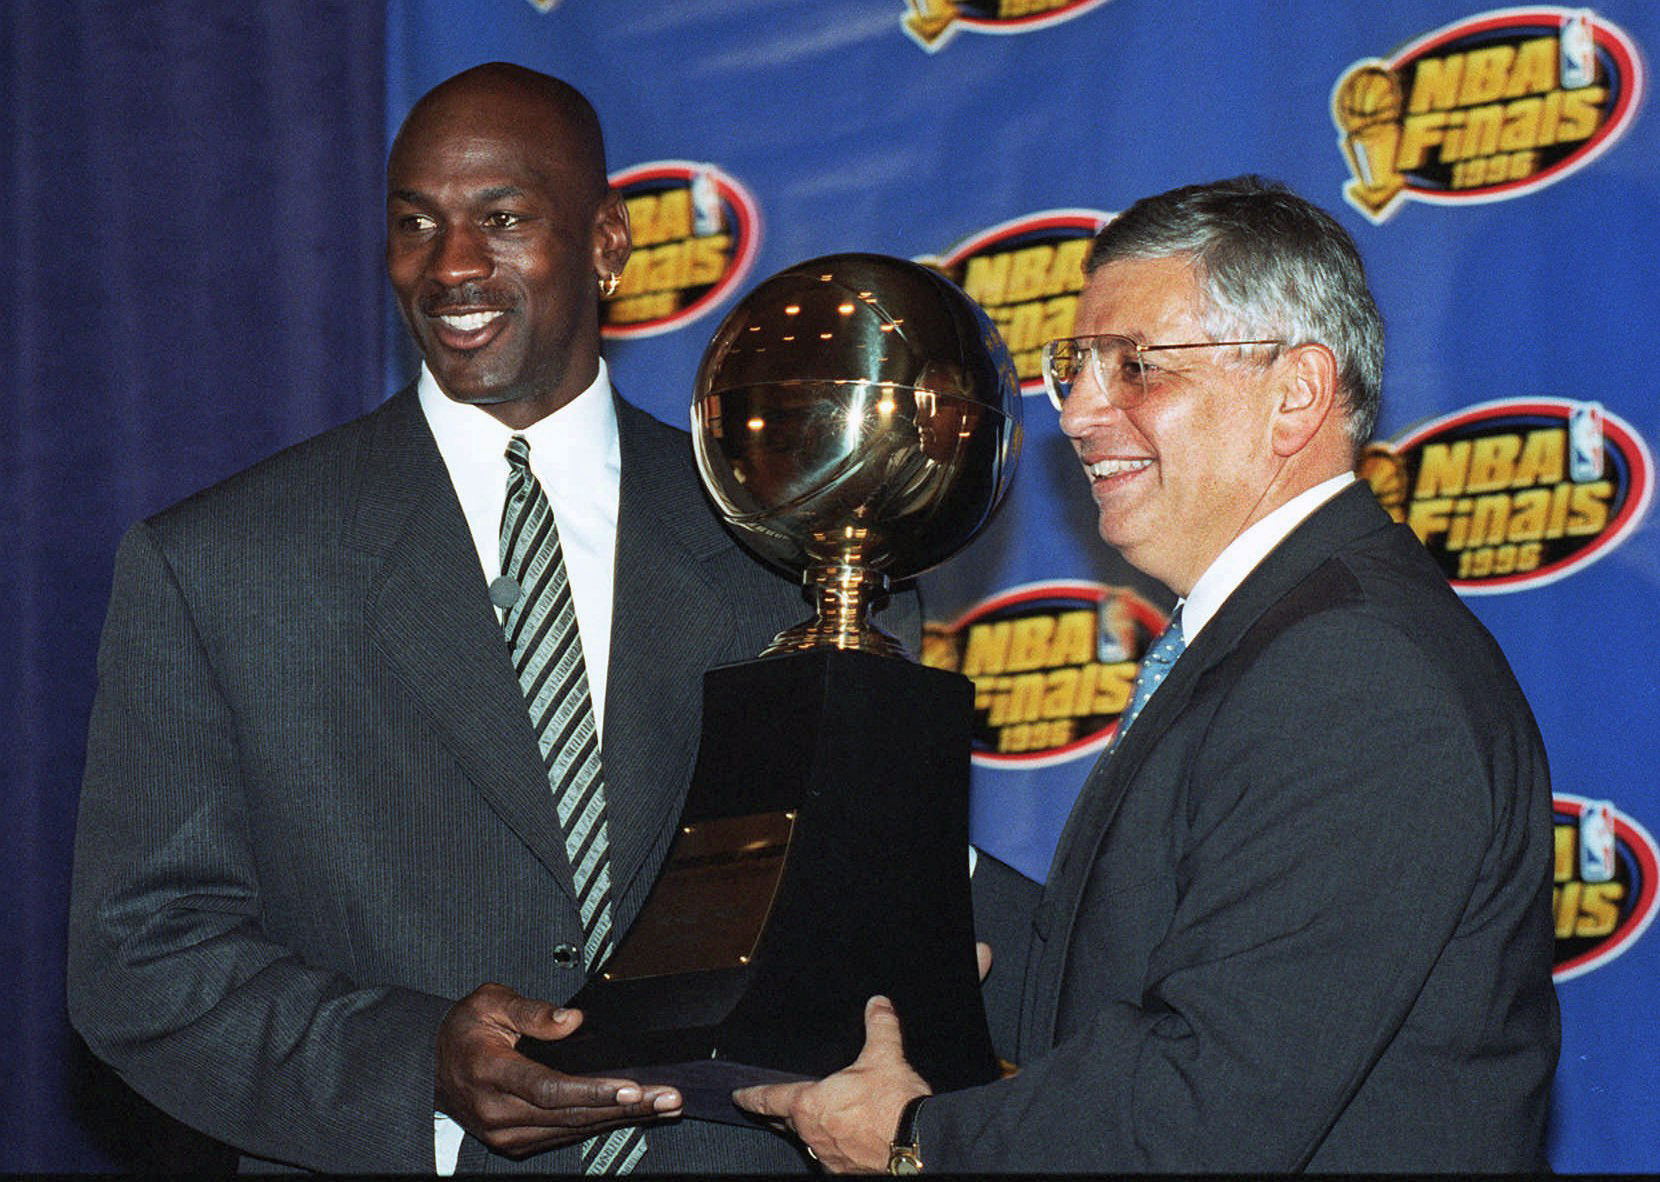 In this June 18, 1996, file photo, Chicago Bulls' Michael Jordan, left, receives the NBA Finals Most Valuable Player trophy from Commissioner David Stern during a ceremony in Chicago. David Stern, who spent 30 years as the NBA's longest-serving commissioner and oversaw its growth into a global power, has died on New Year's Day, Wednesday, Jan. 1, 2020. He was 77.